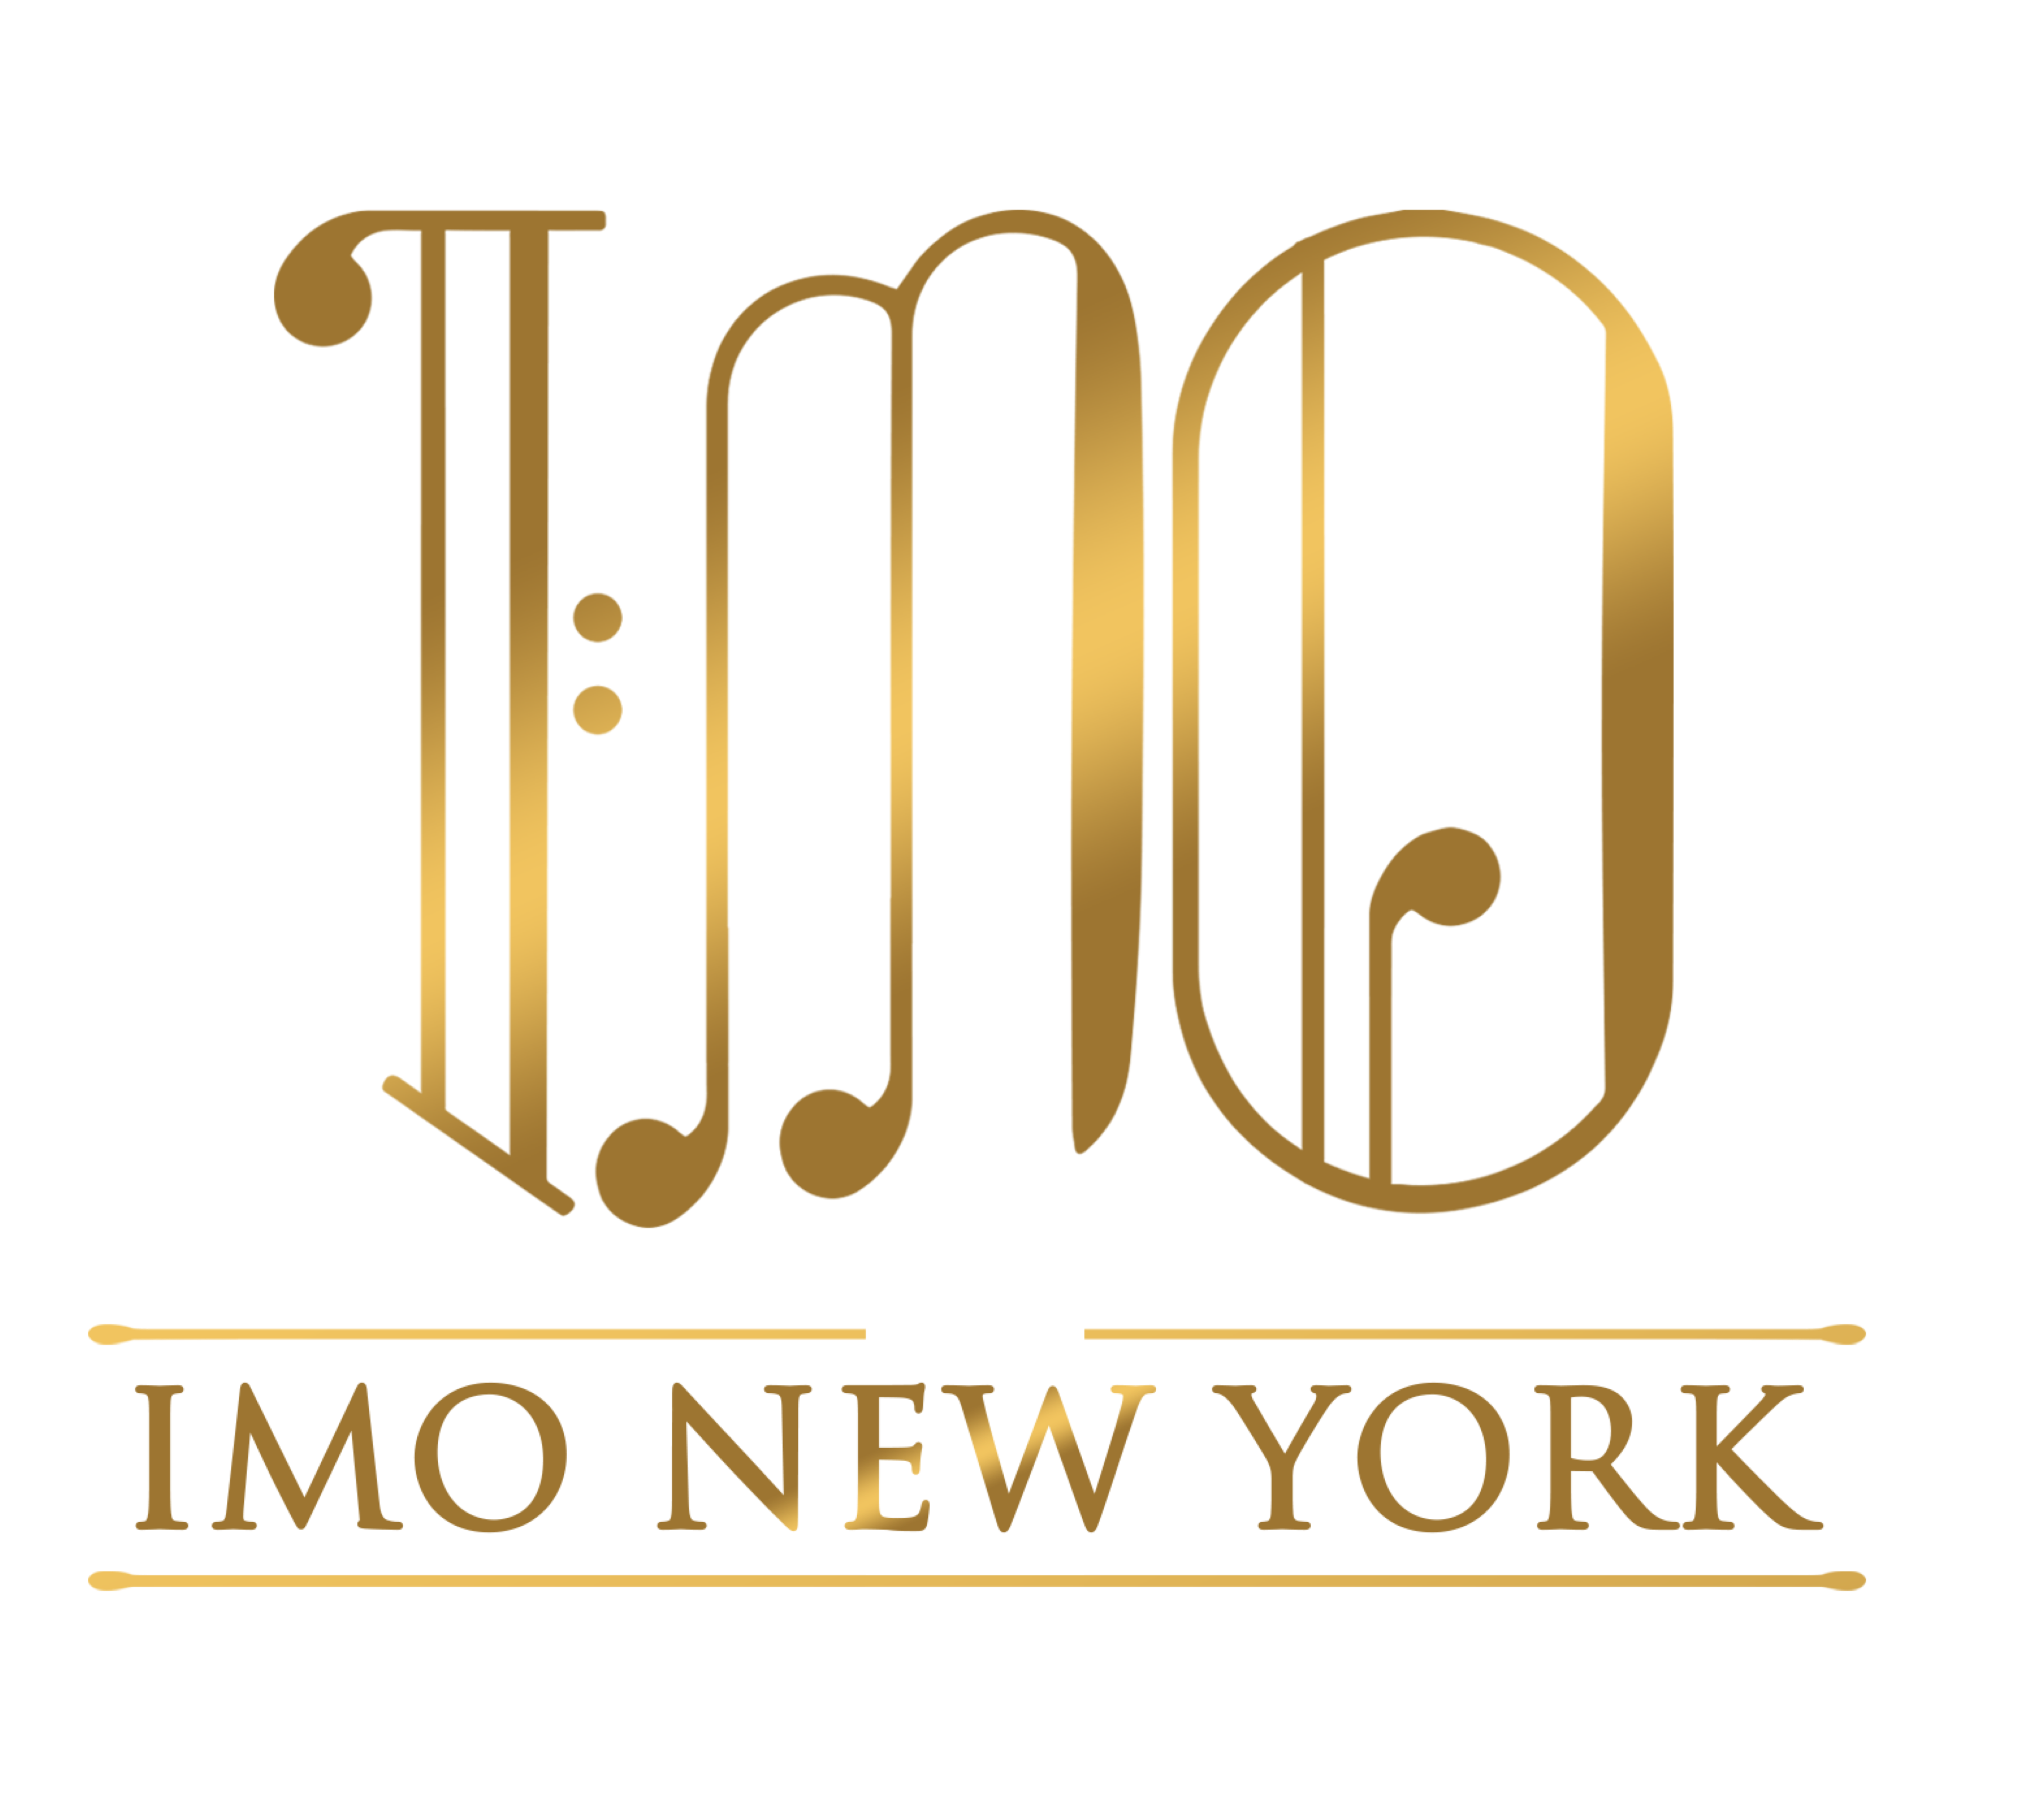 Ny debut concerto audition imonewyork for 10 rockefeller plaza 4th floor new york ny 10020